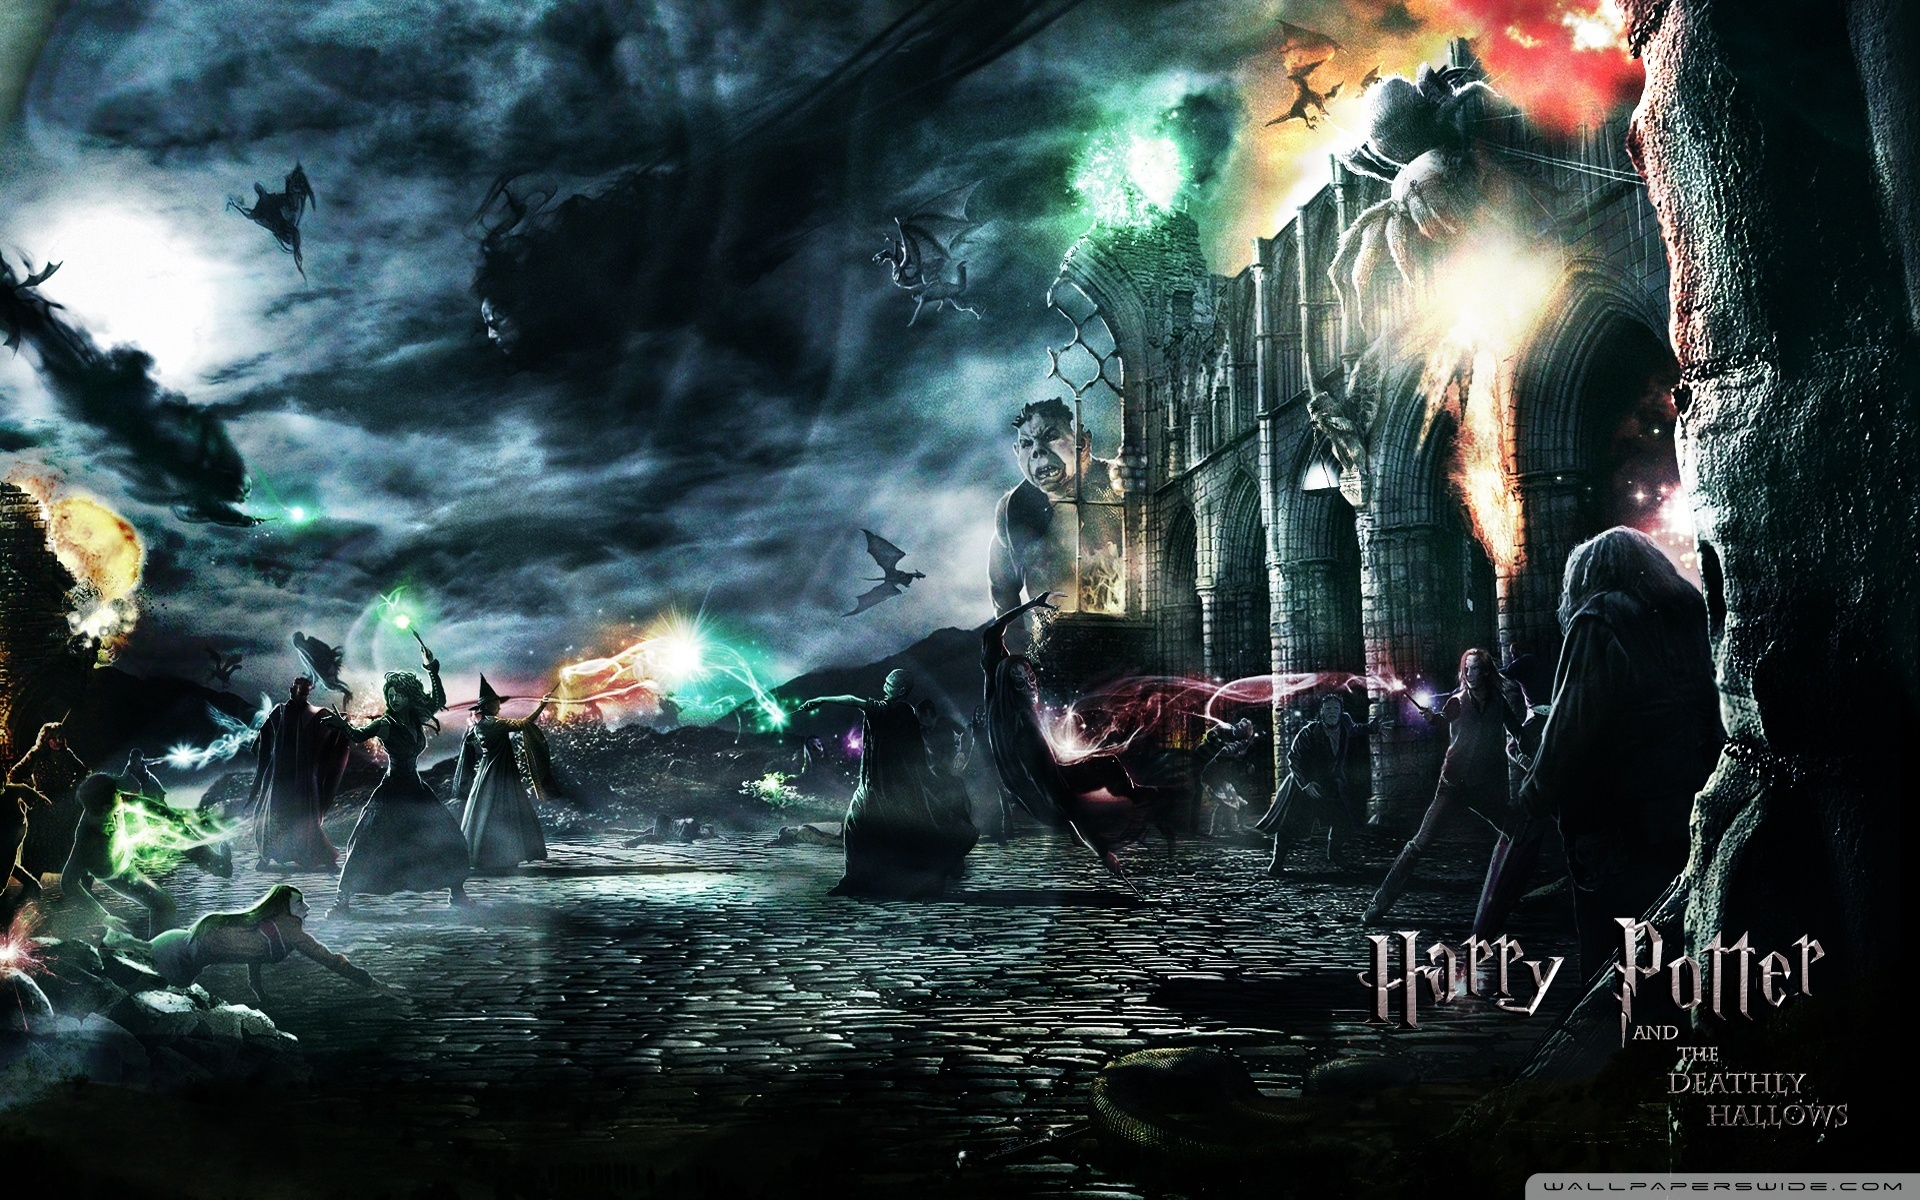 Harry Potter And The Deathly Hallows <3